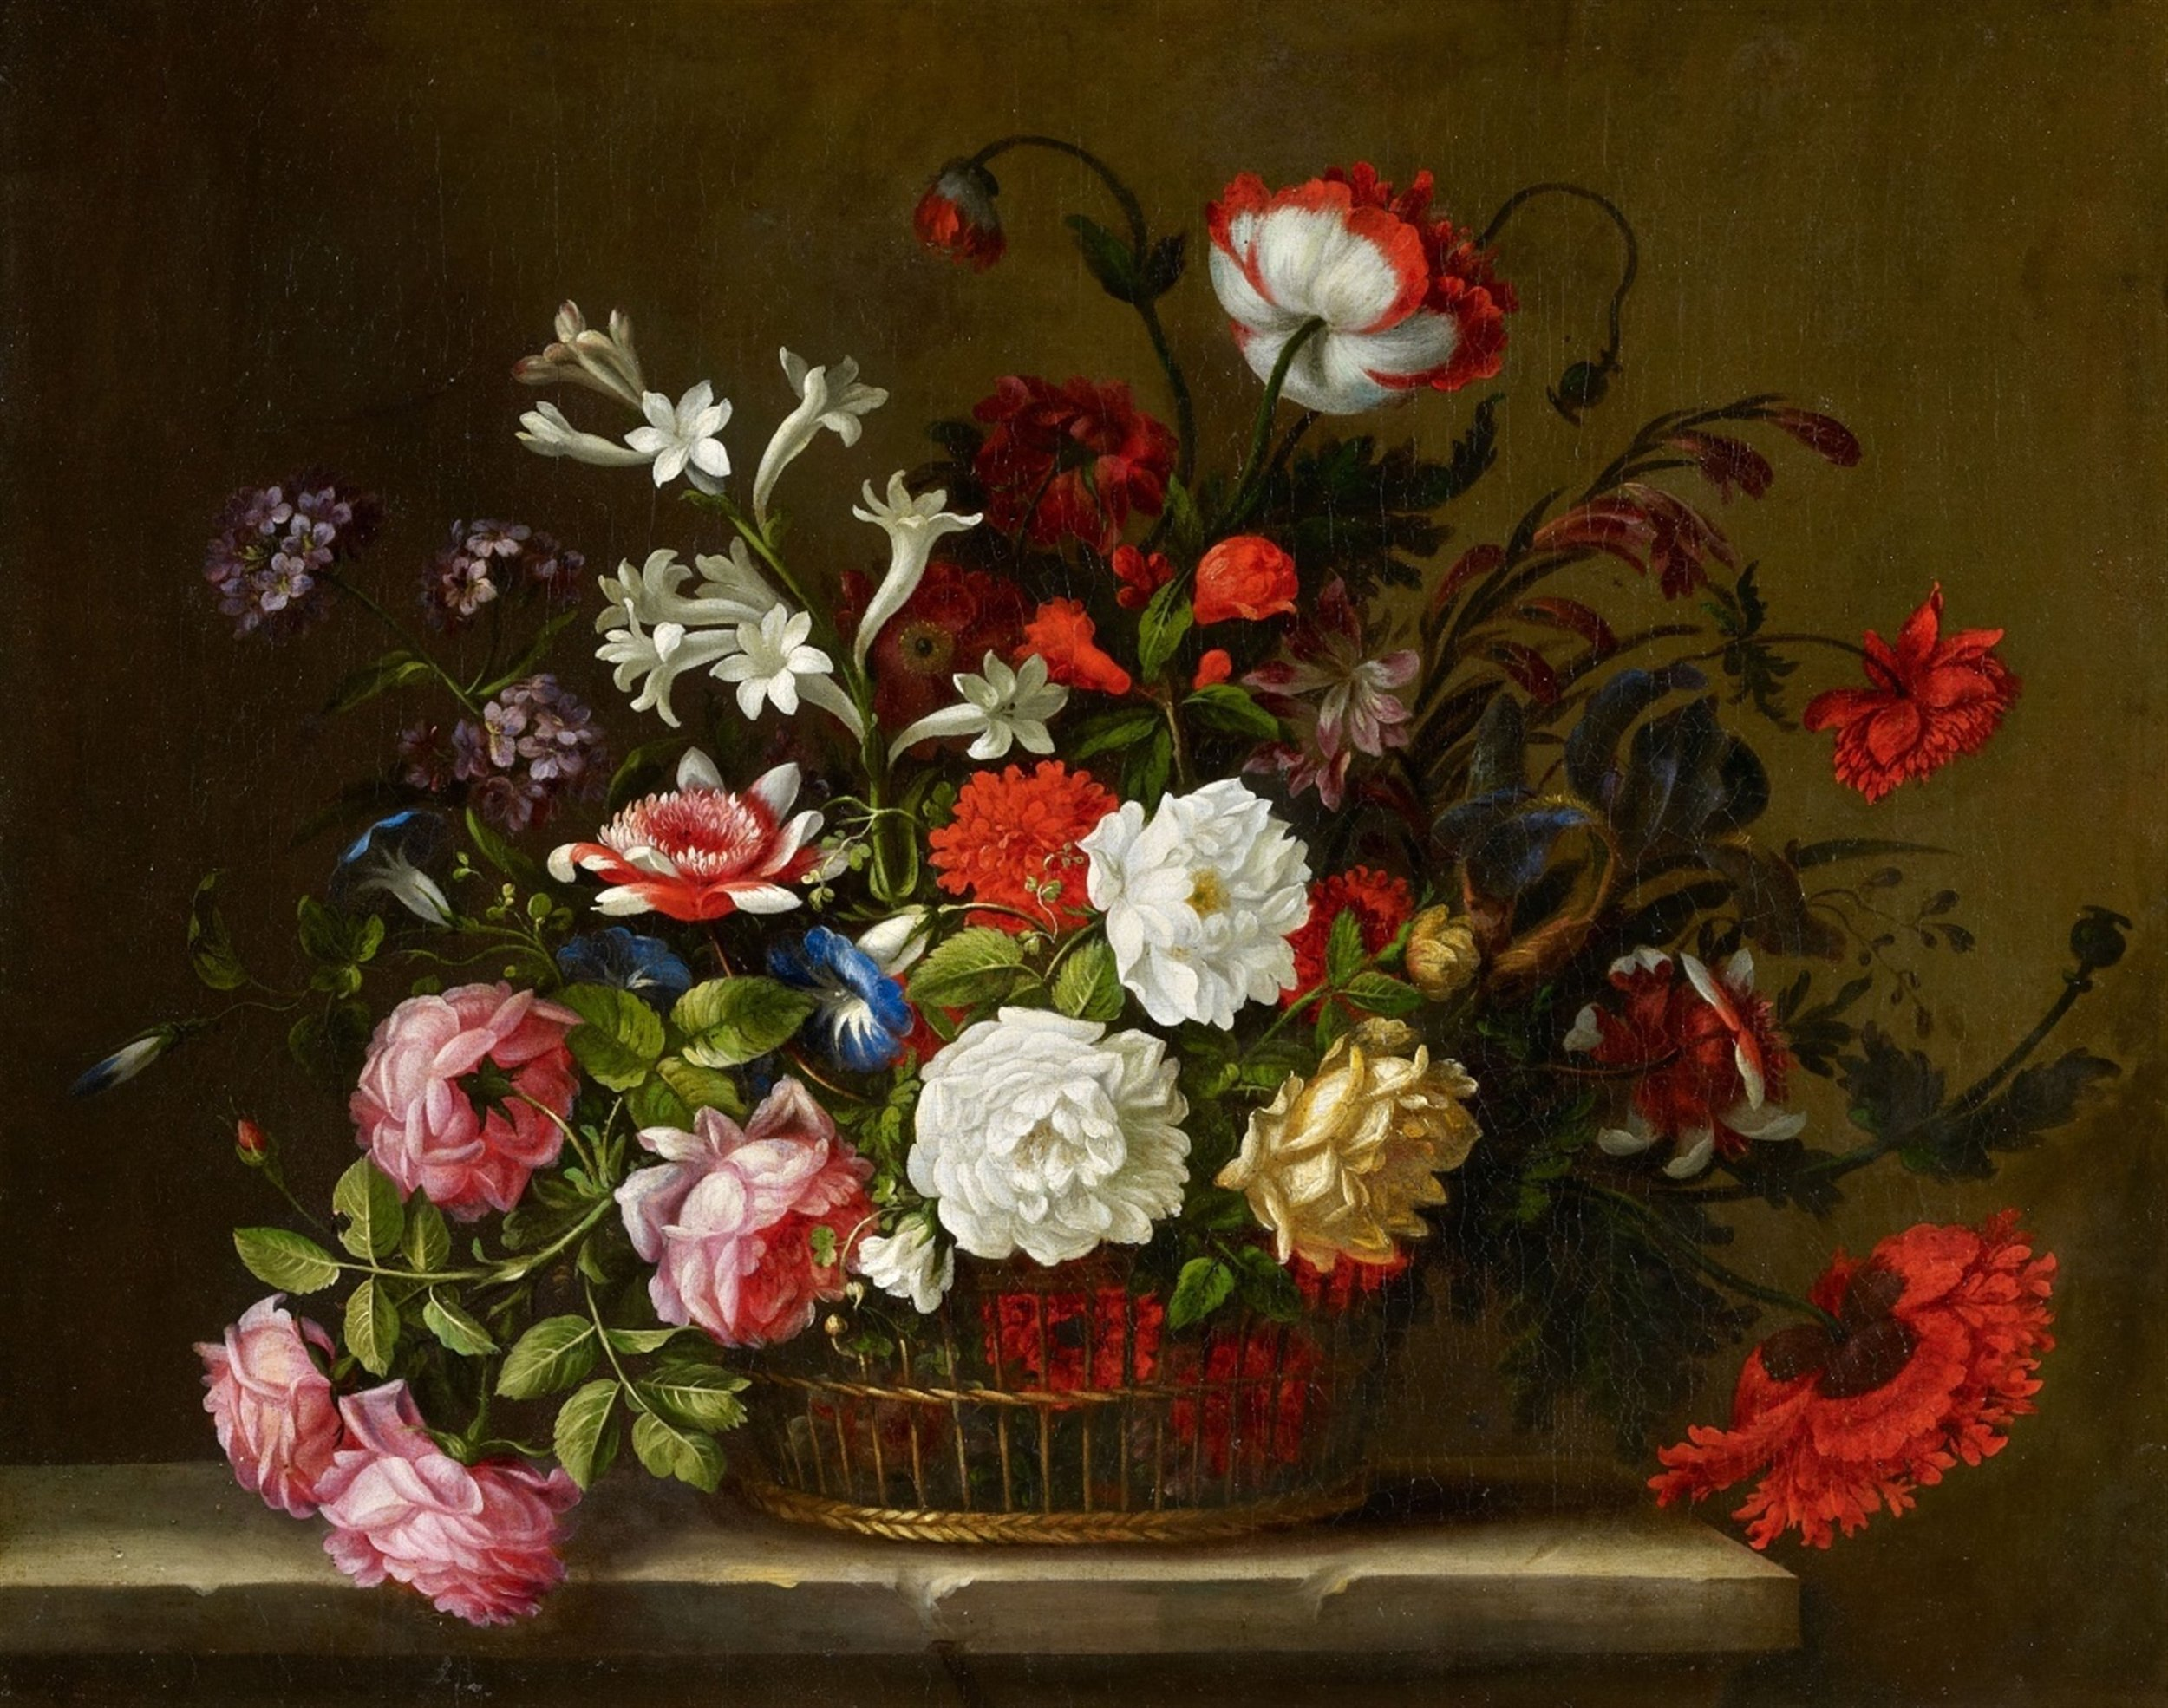 csm_Lempertz-1083-32-Paintings-15th-19th-C-French-school-17th-century-Still-Life-with-Peonies-_00b6b74007.jpg